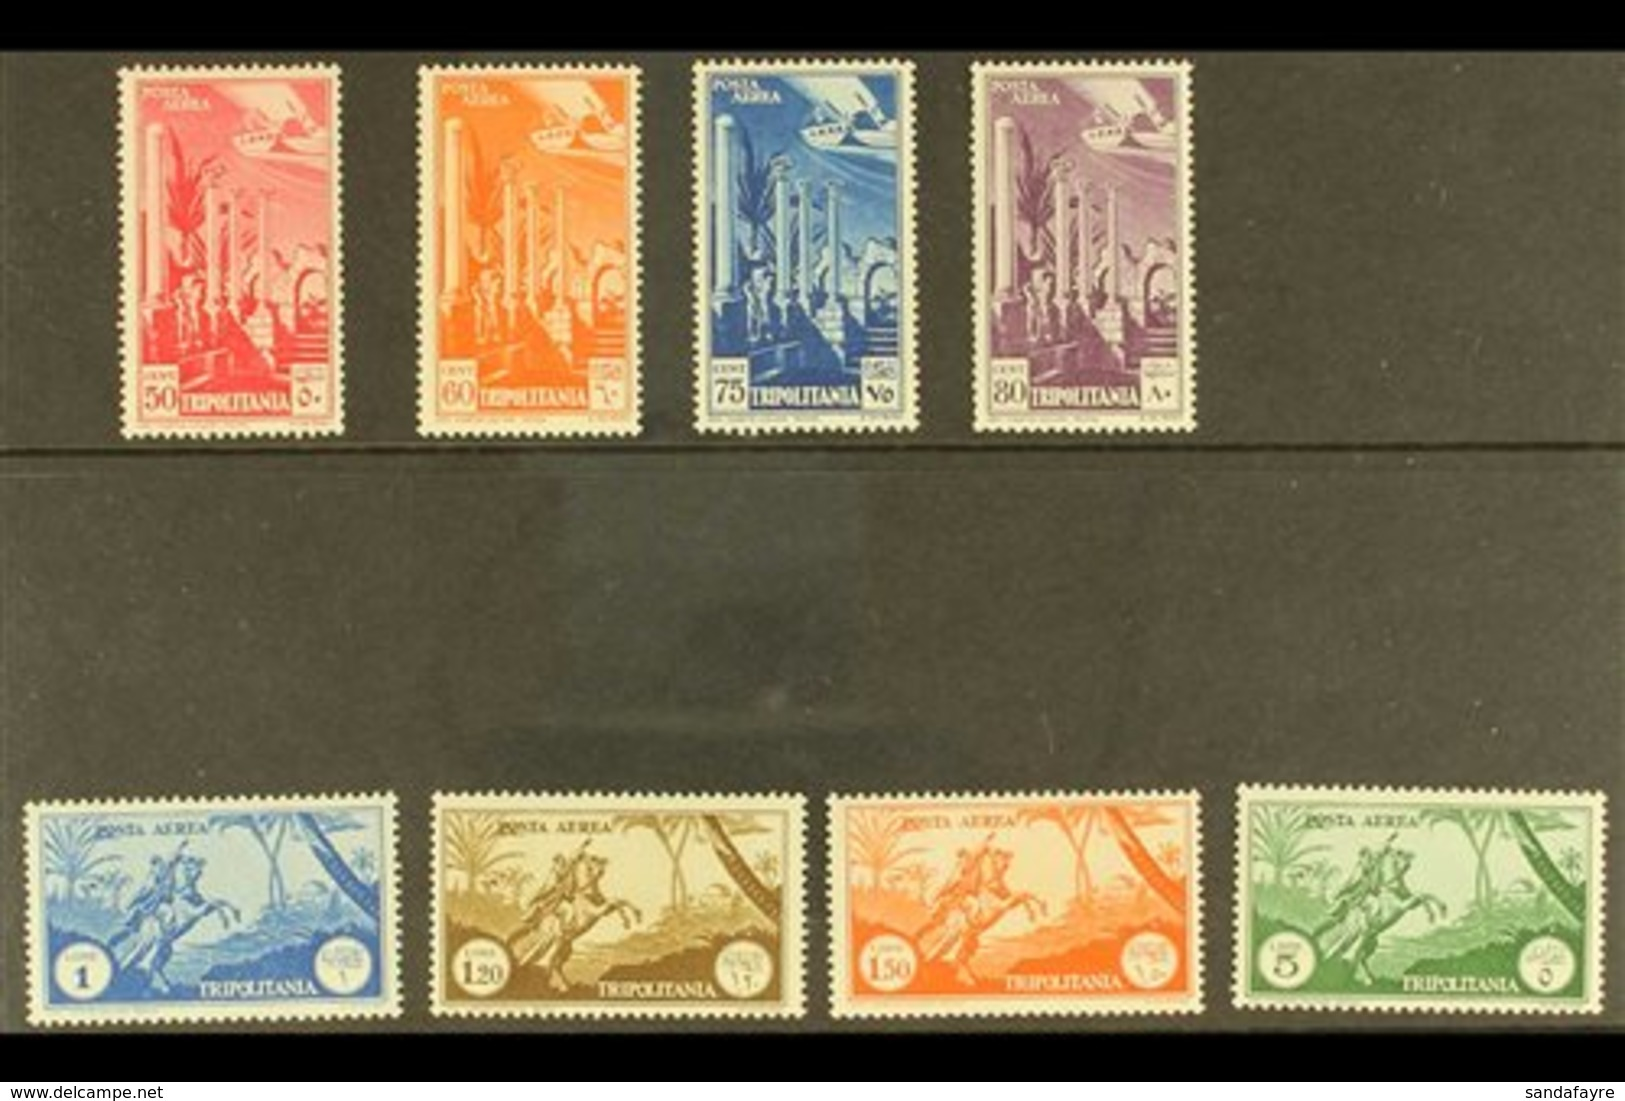 TRIPOLITANIA 1931-32 Air Complete Set (Sassone 9/16, SG 116/22), Never Hinged Mint, Very Fresh. (8 Stamps) For More Imag - Italy